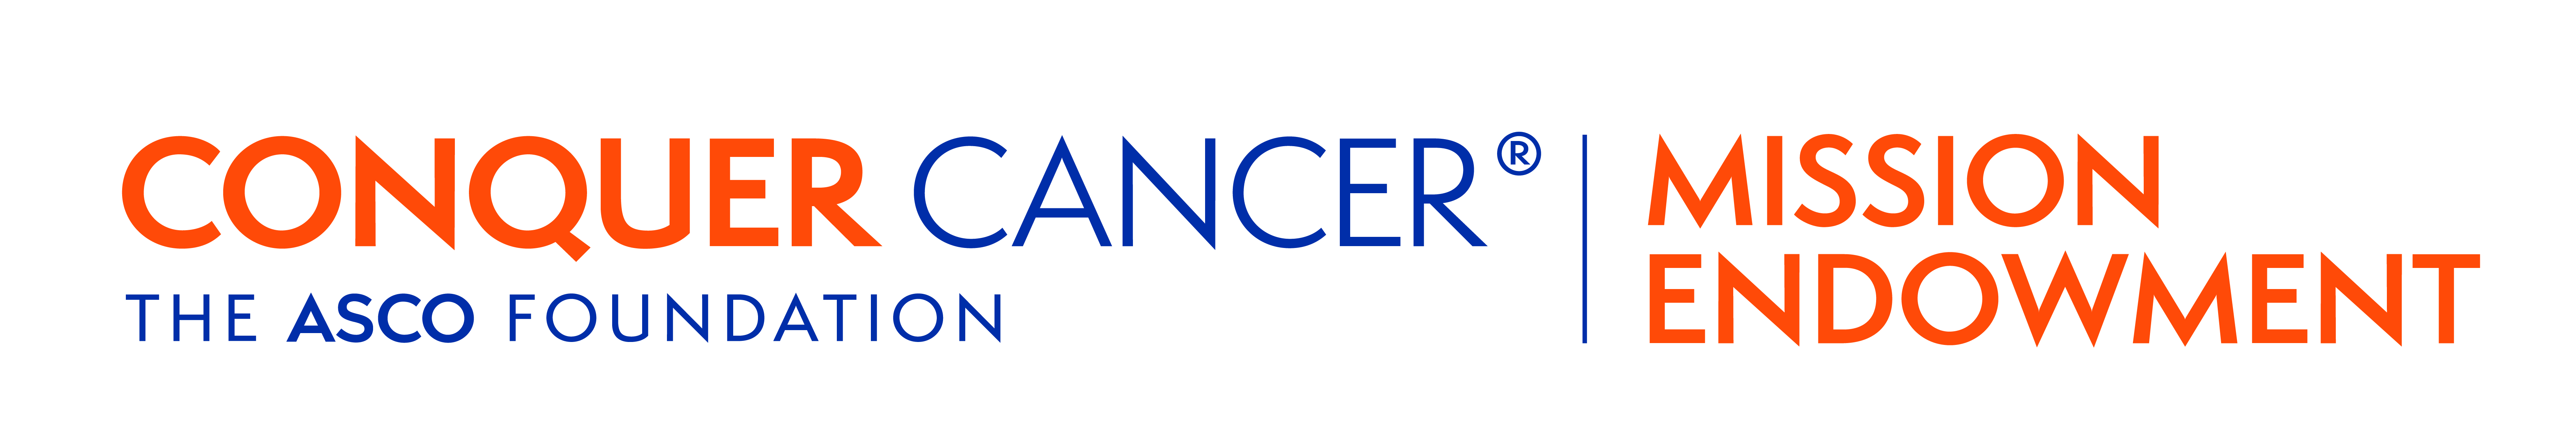 Conquer Cancer ™ The ASCO Foundation: Mission Endowment